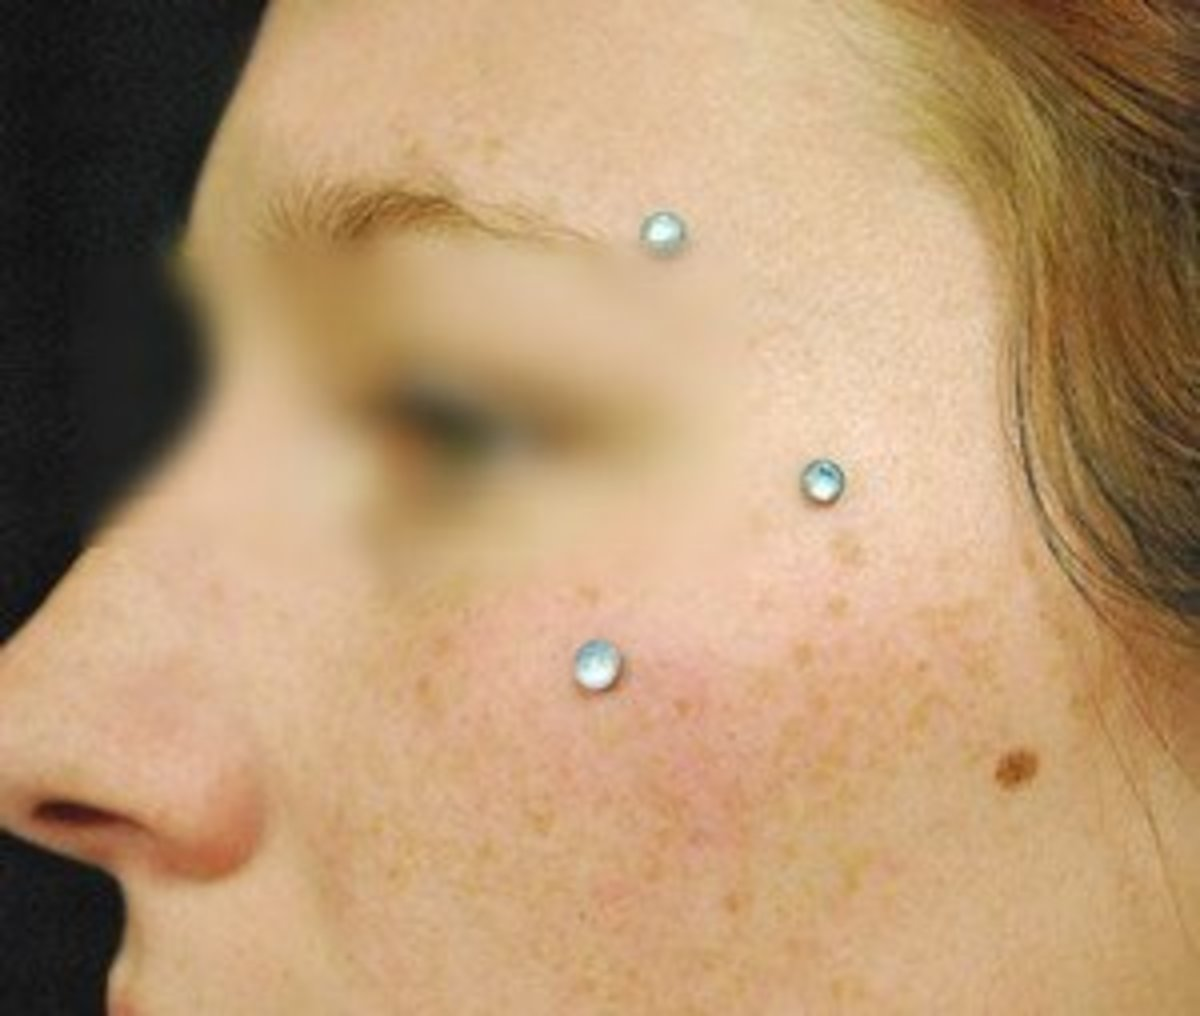 Dermal Piercing Pictures Procedure Aftercare And Risks Tatring Tattoos Piercings